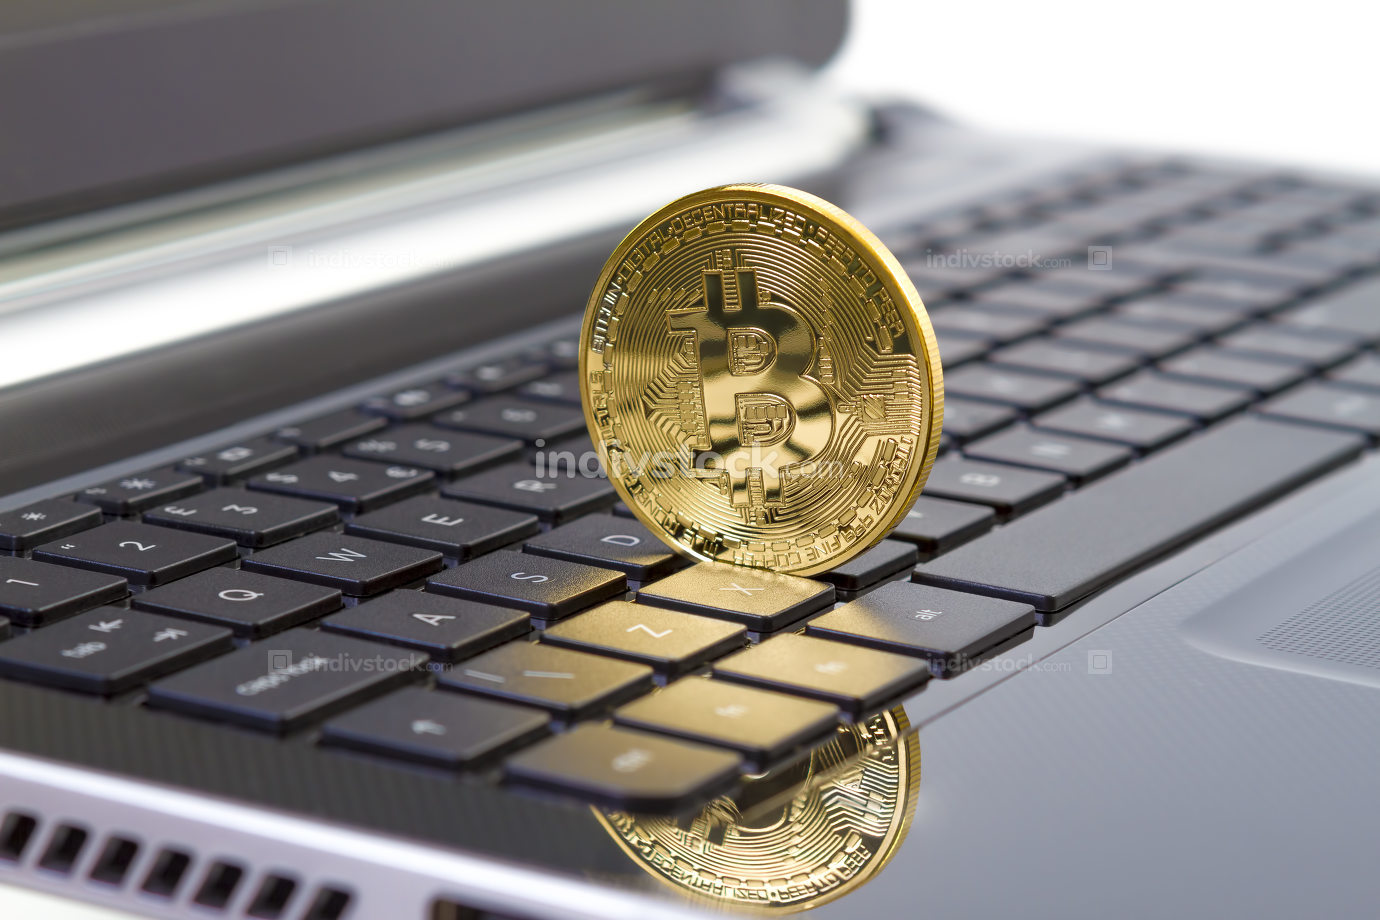 Golden bitcoin digital currency on laptop keyboard